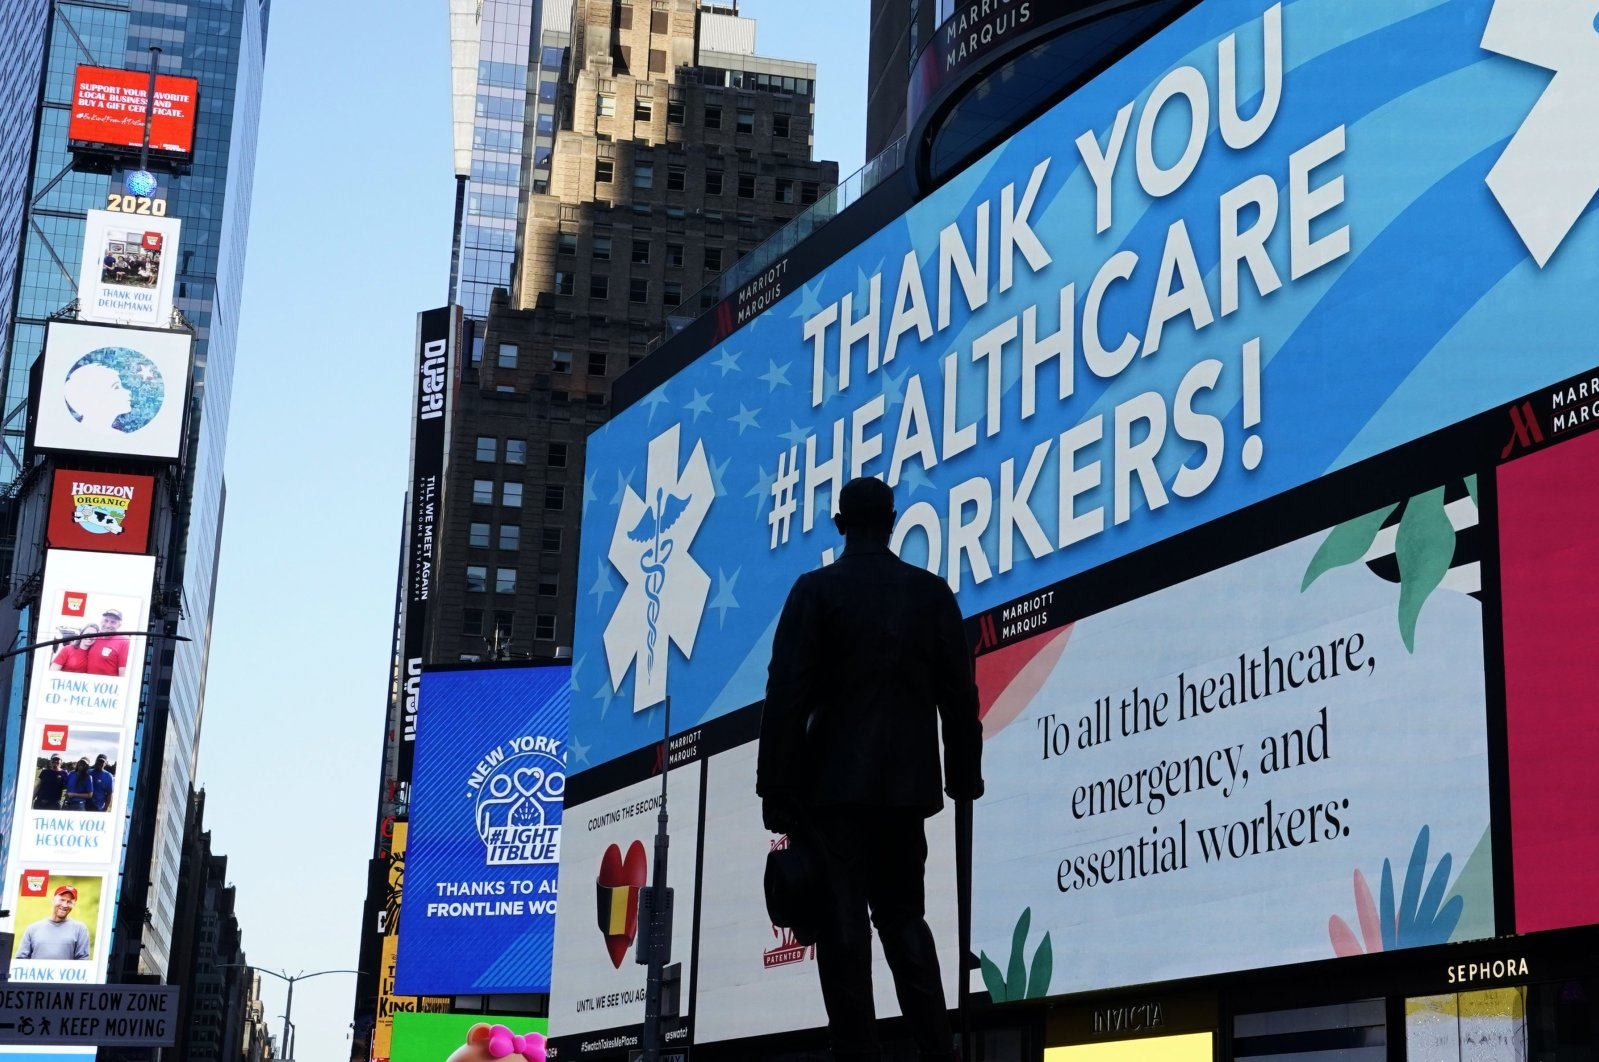 The statue of composer George M. Cohan is seen in Times Square in New York City, while in the background some of the nearly 1,800 digital billboards and screens across all five boroughs are displaying messages of public safety, gratitude, pride and solidarity with essential workers, New York, U.S., April 19, 2020. (AFP Photo)